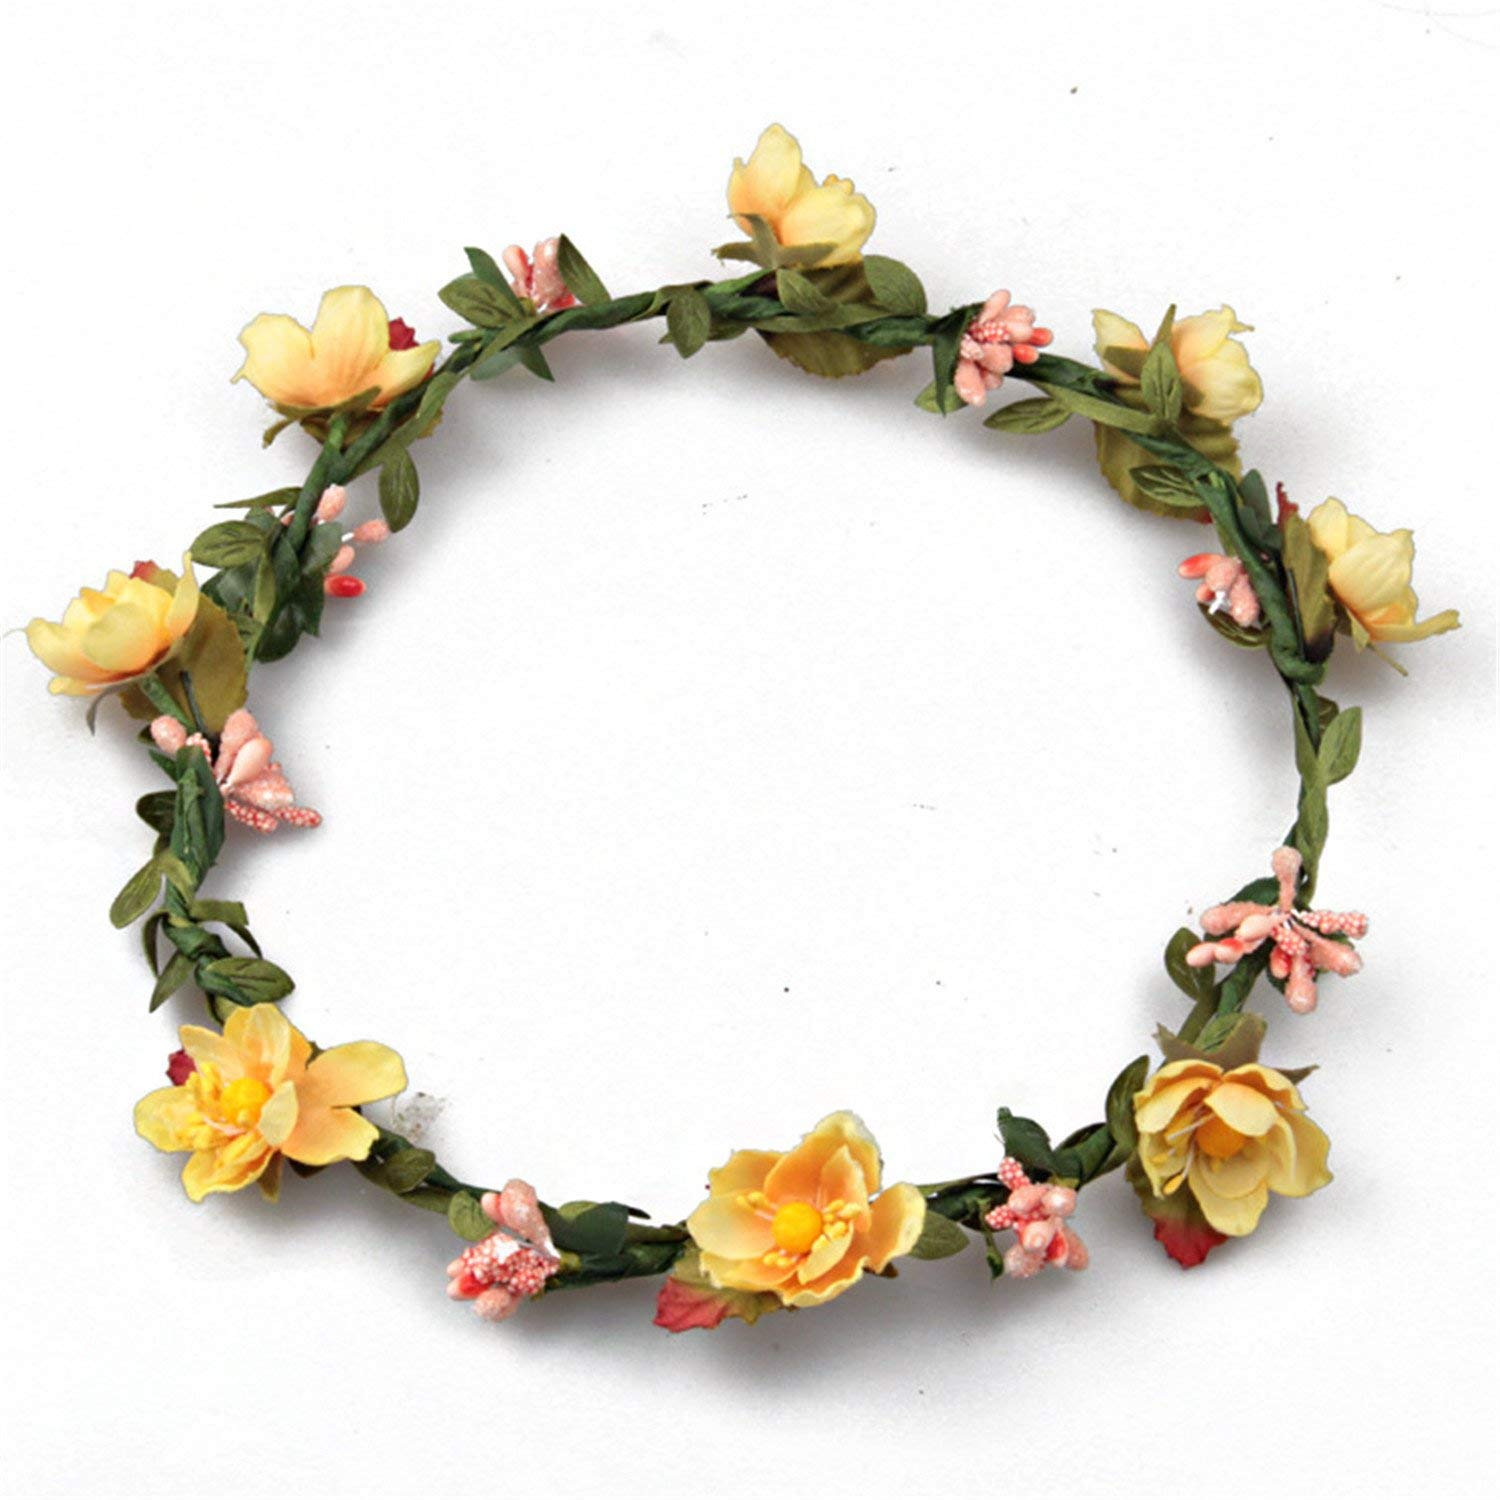 Cheap Artificial Flower Wreath Funeral Find Artificial Flower